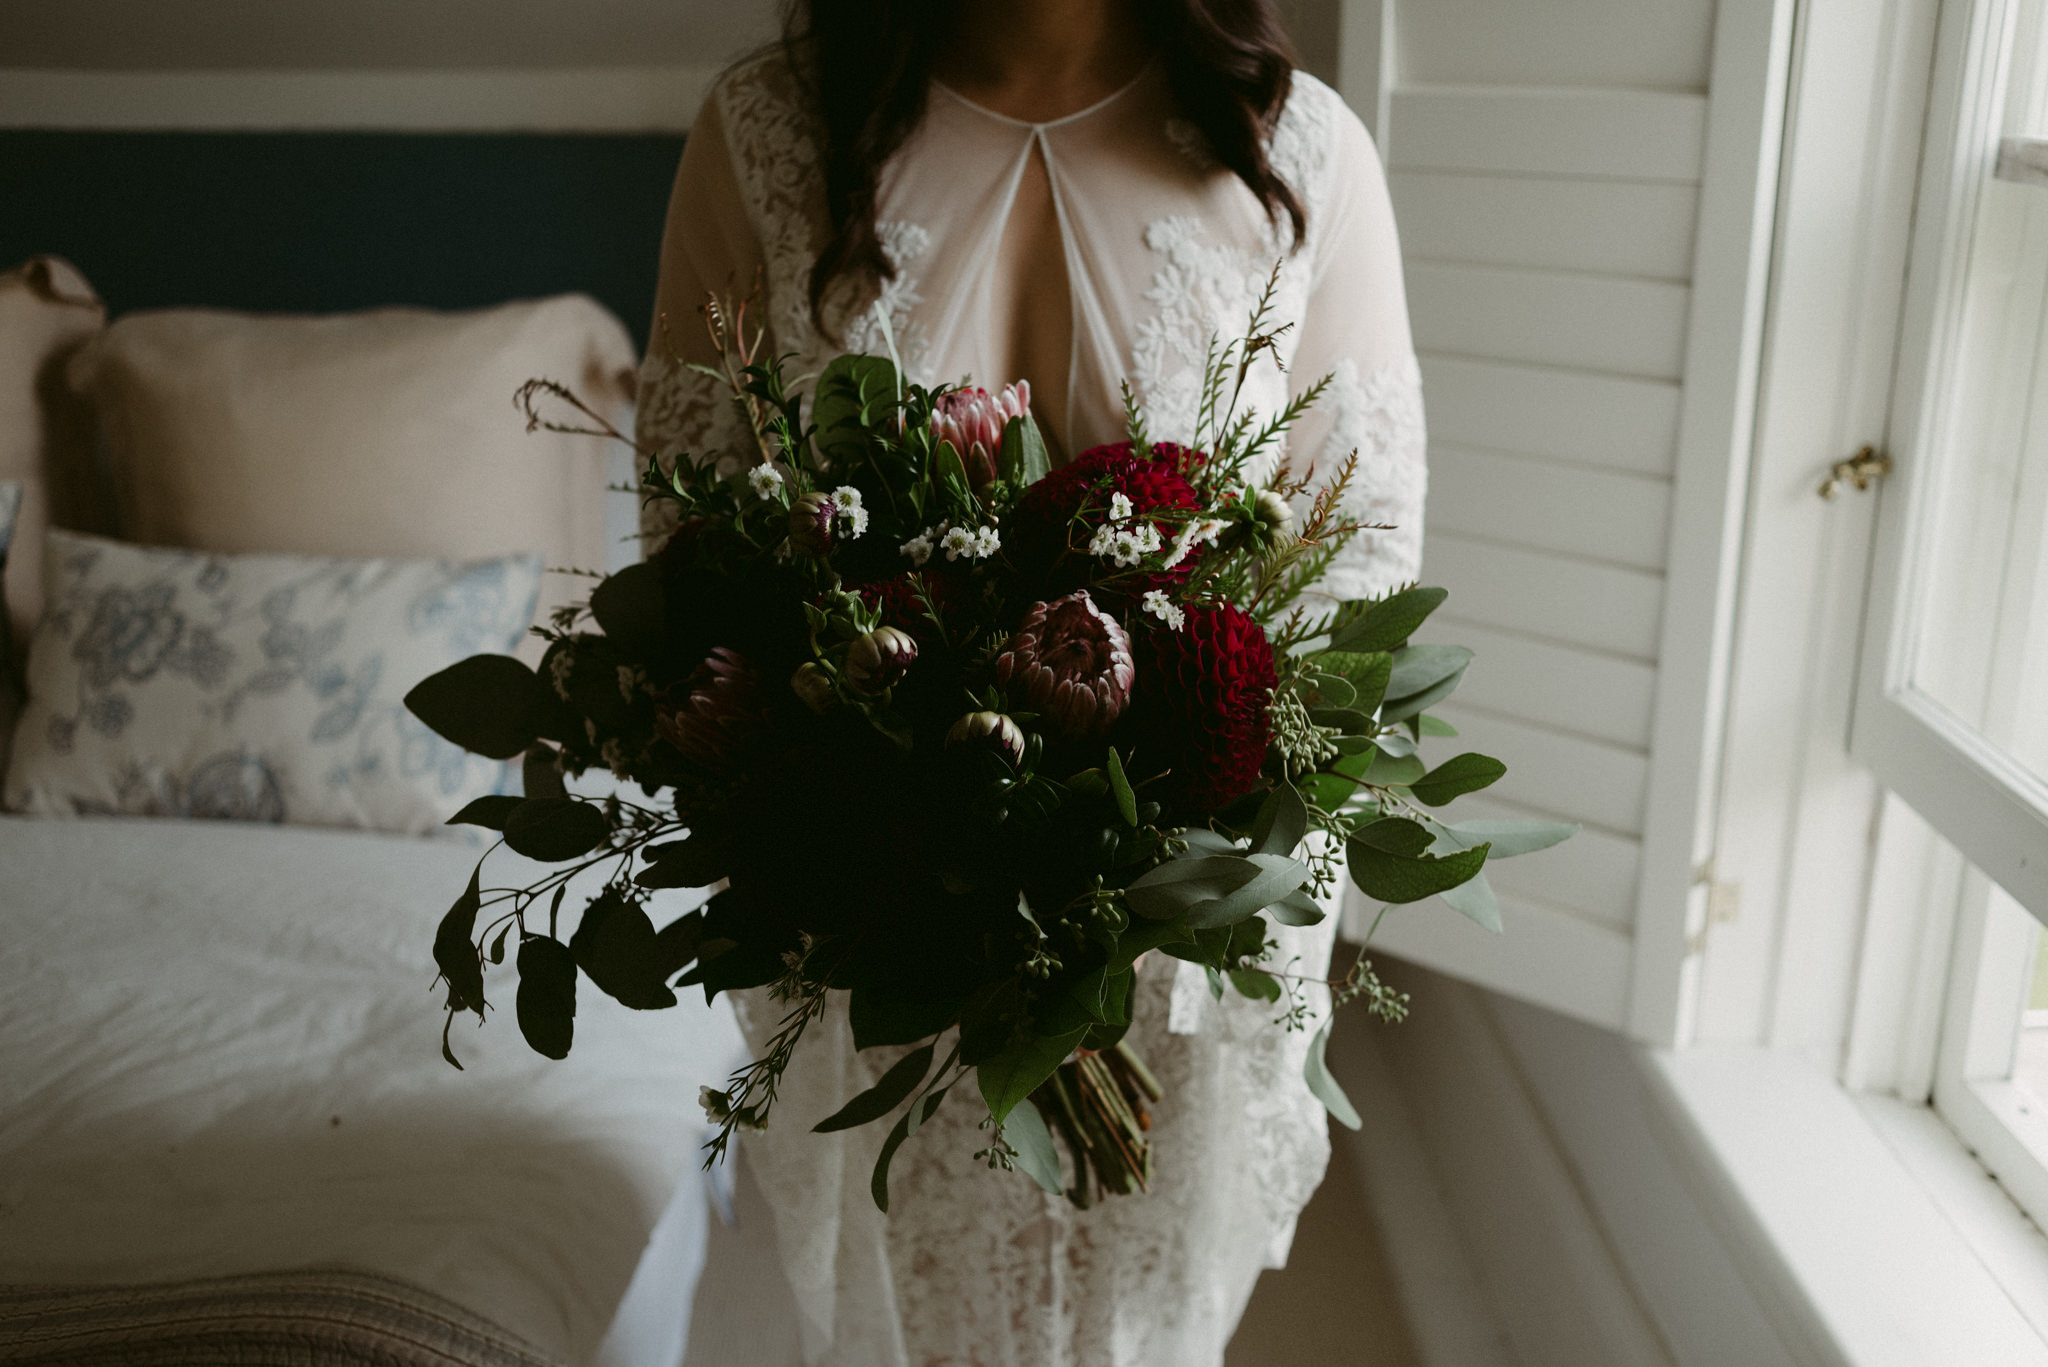 Bride in lace dress holding maroon and dark green bouquet